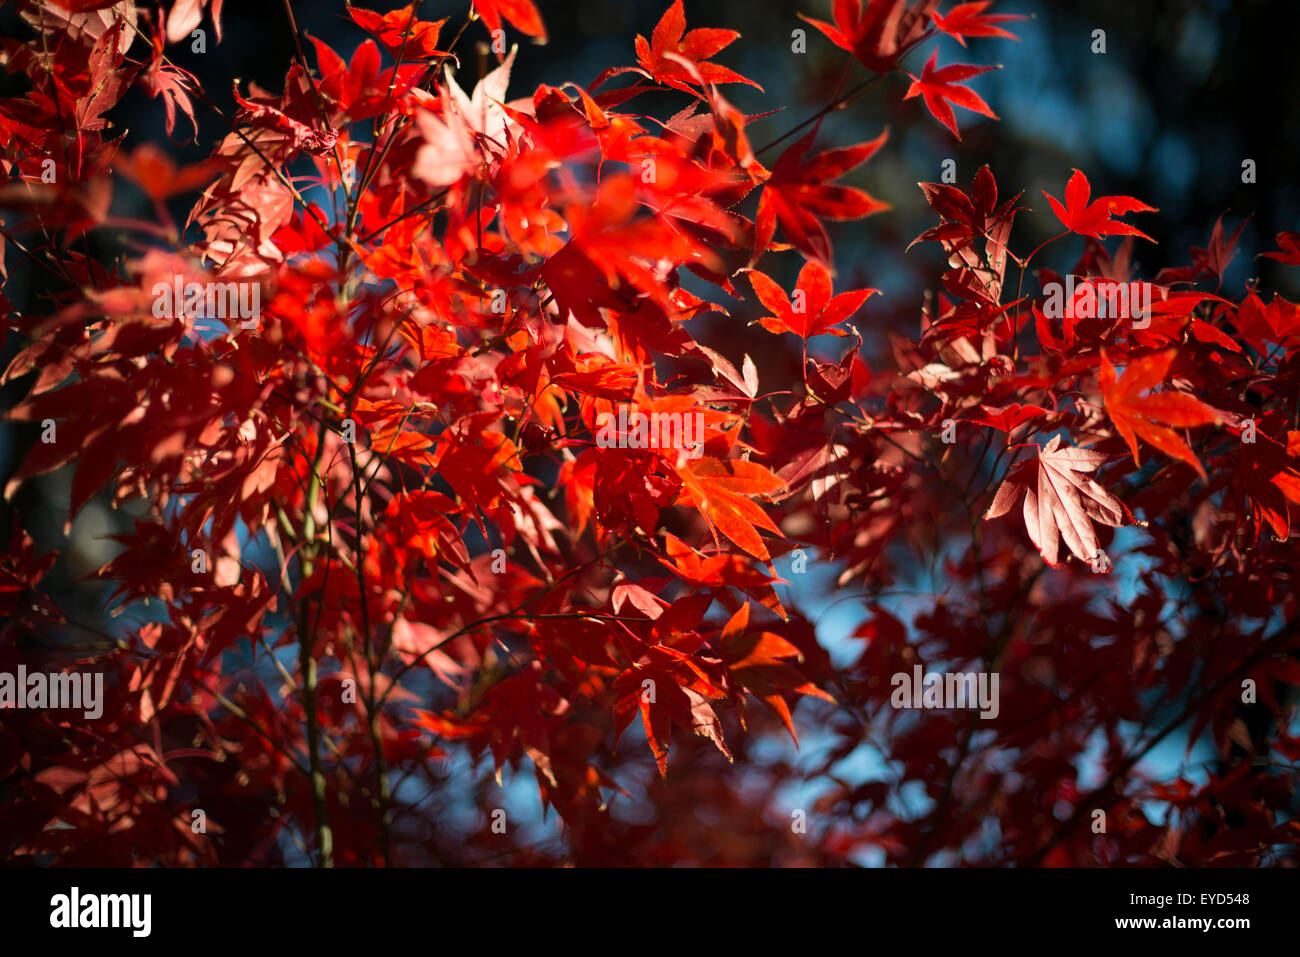 Bright red maple leaves, close up - Stock Image